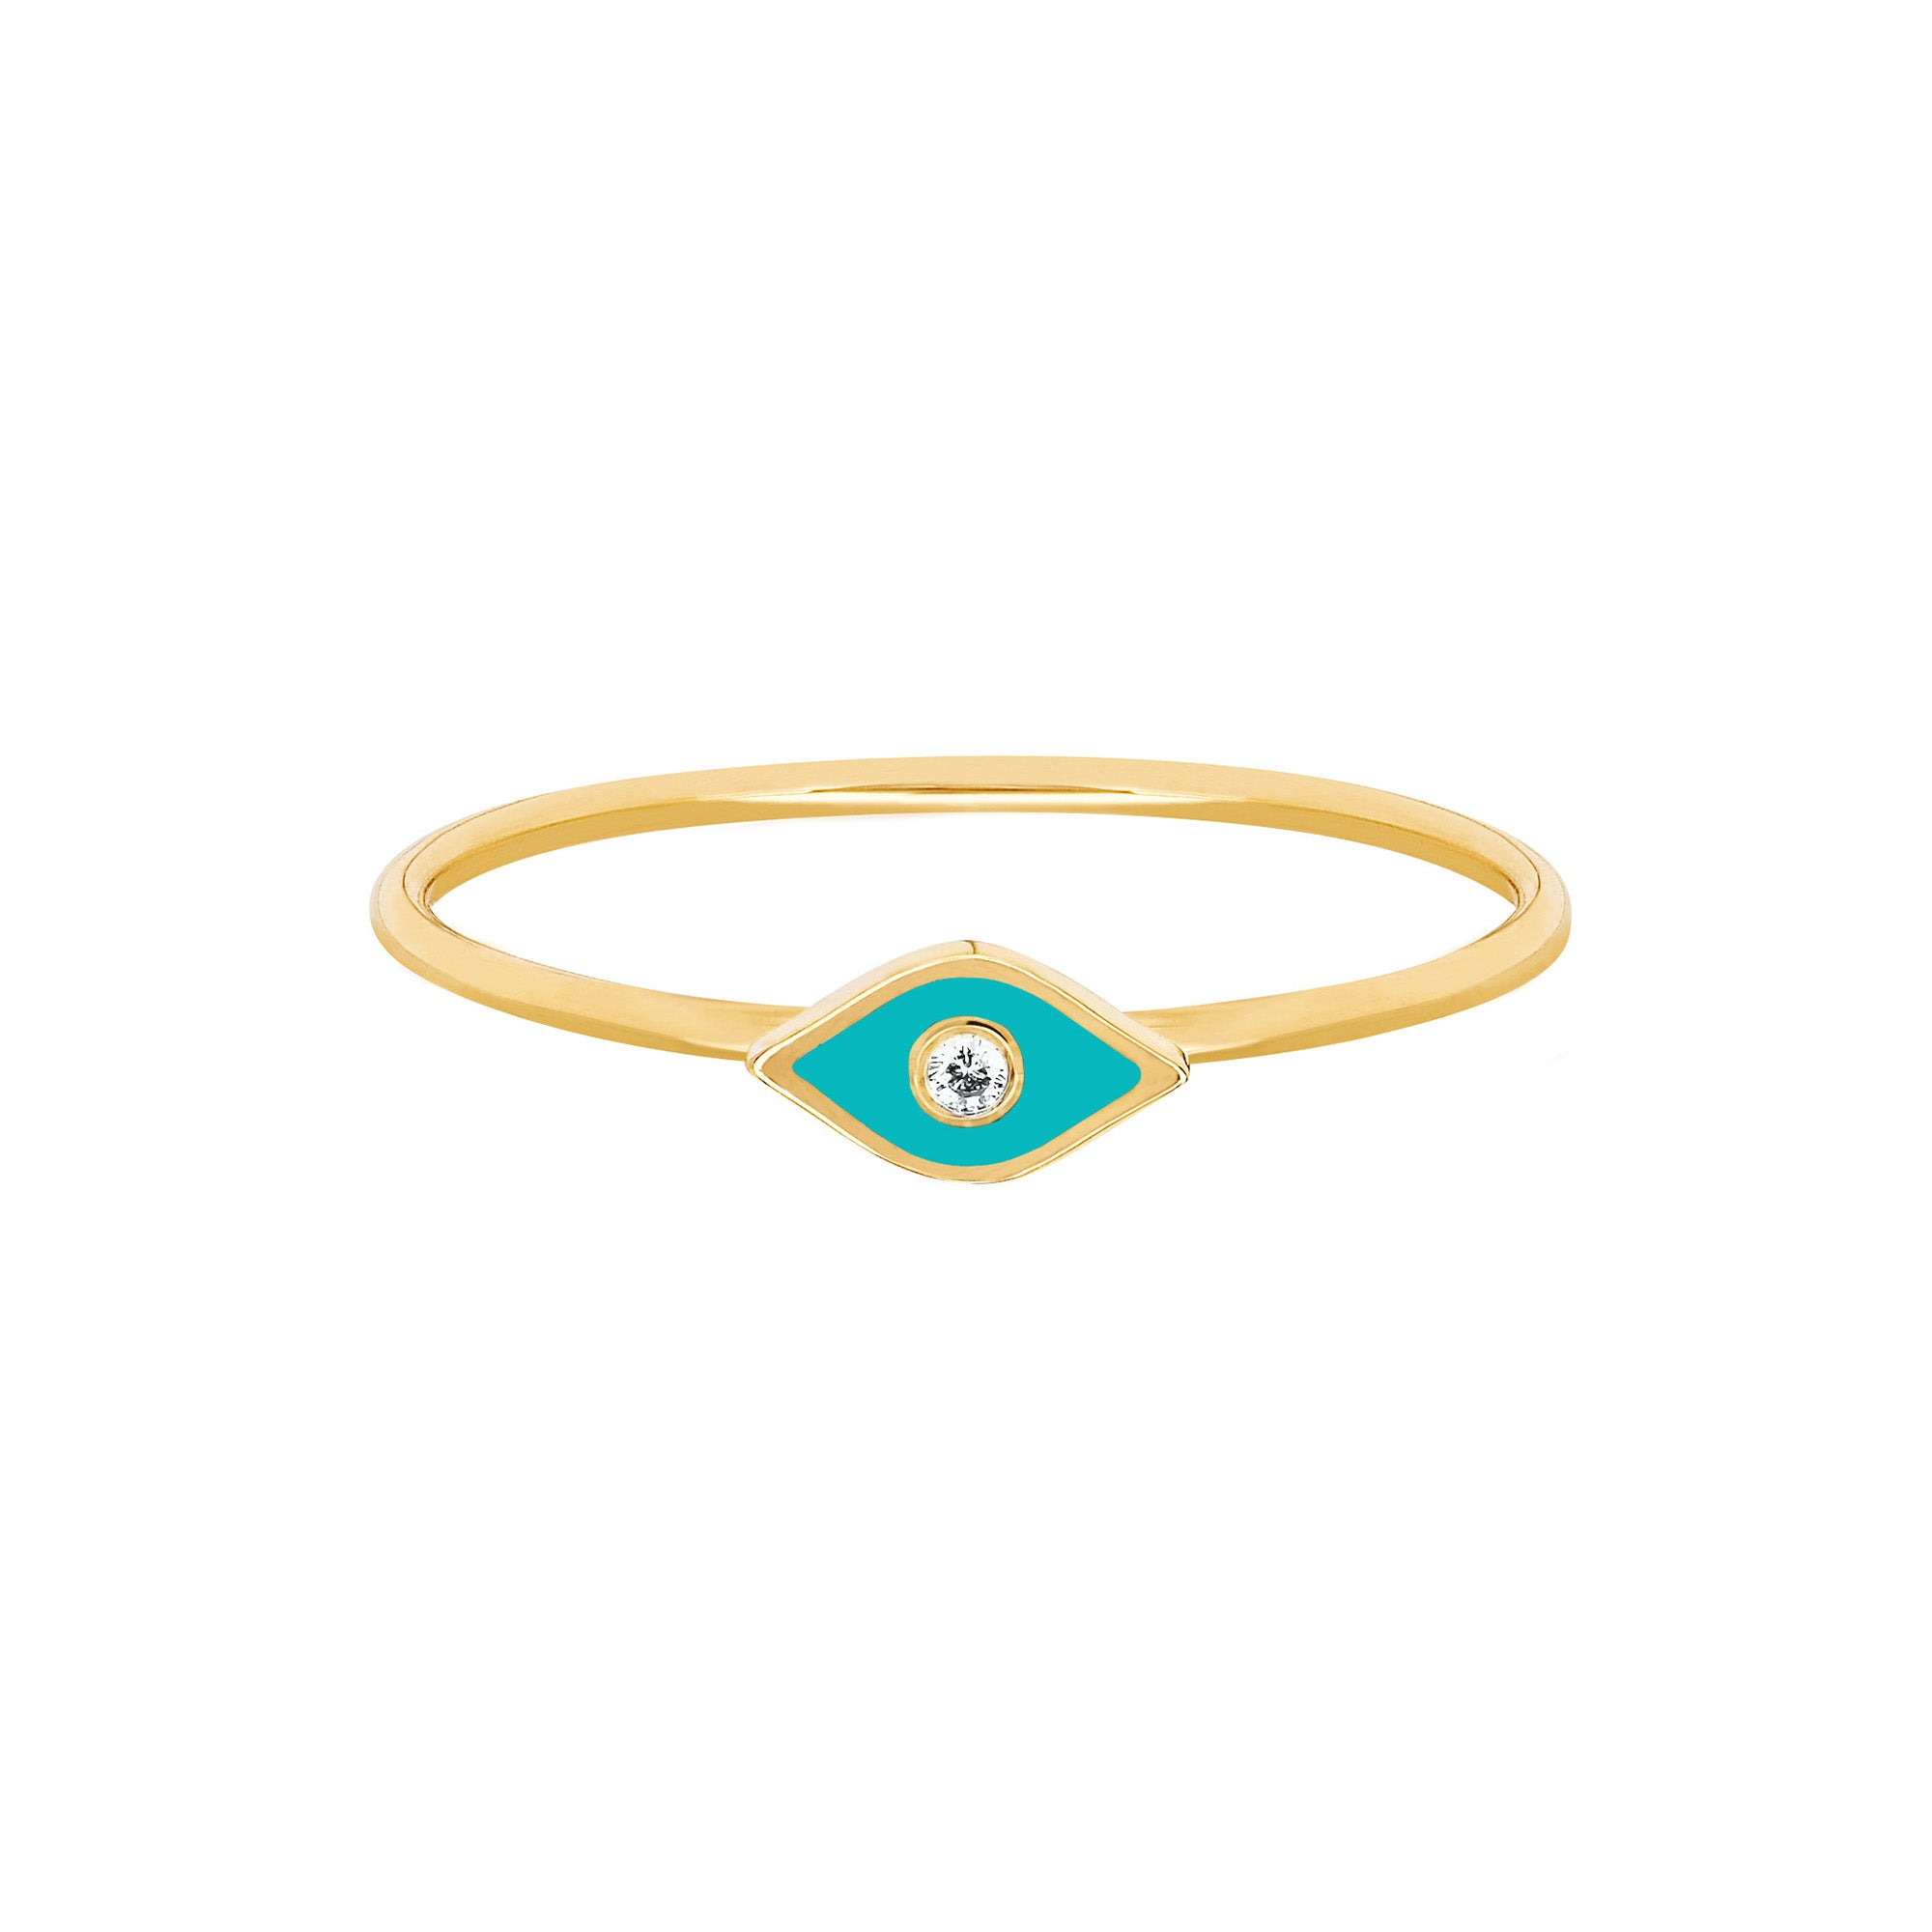 Turquoise Evil Eye Ring by EF Collection for Broken English Jewelry